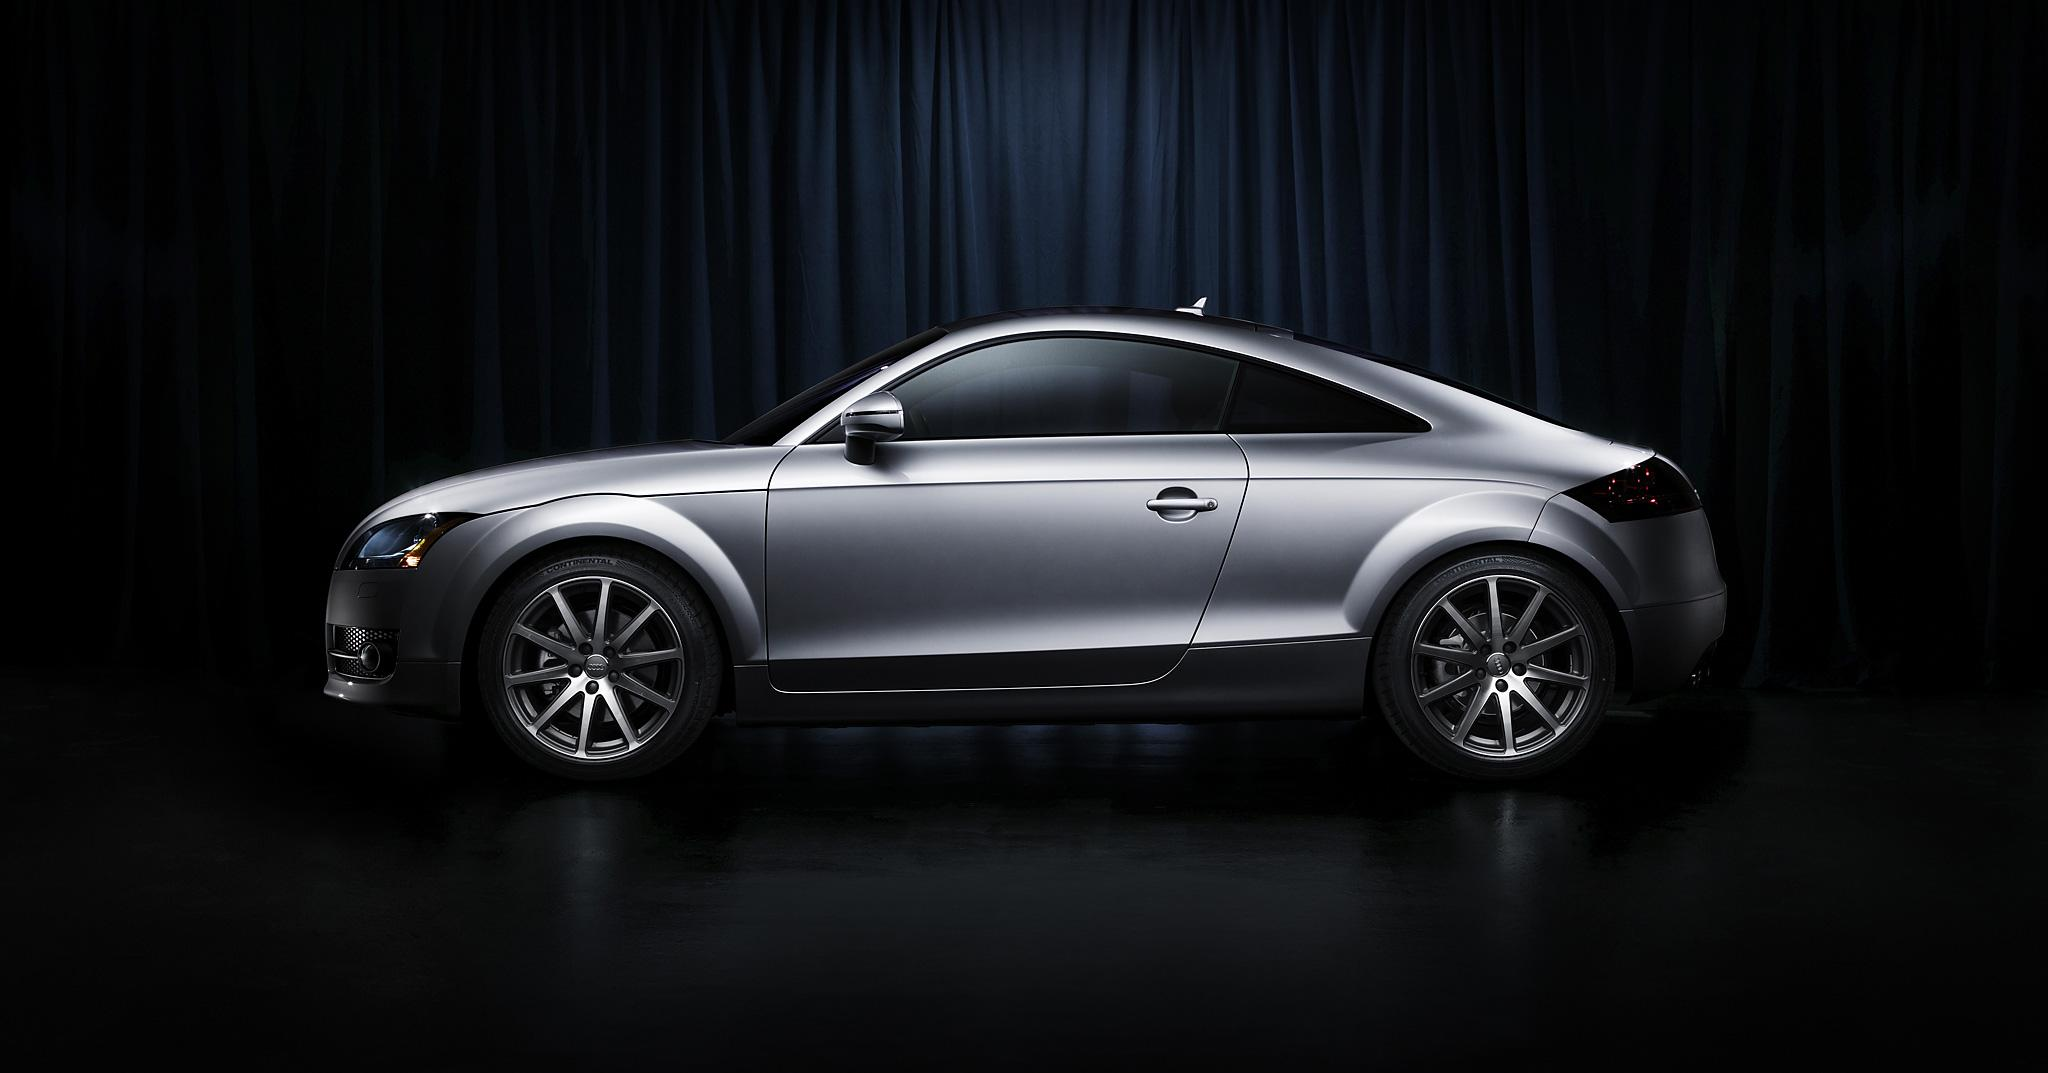 TPP-automotive-sporty-Audi-tt-profile.jpg (2048×1073)